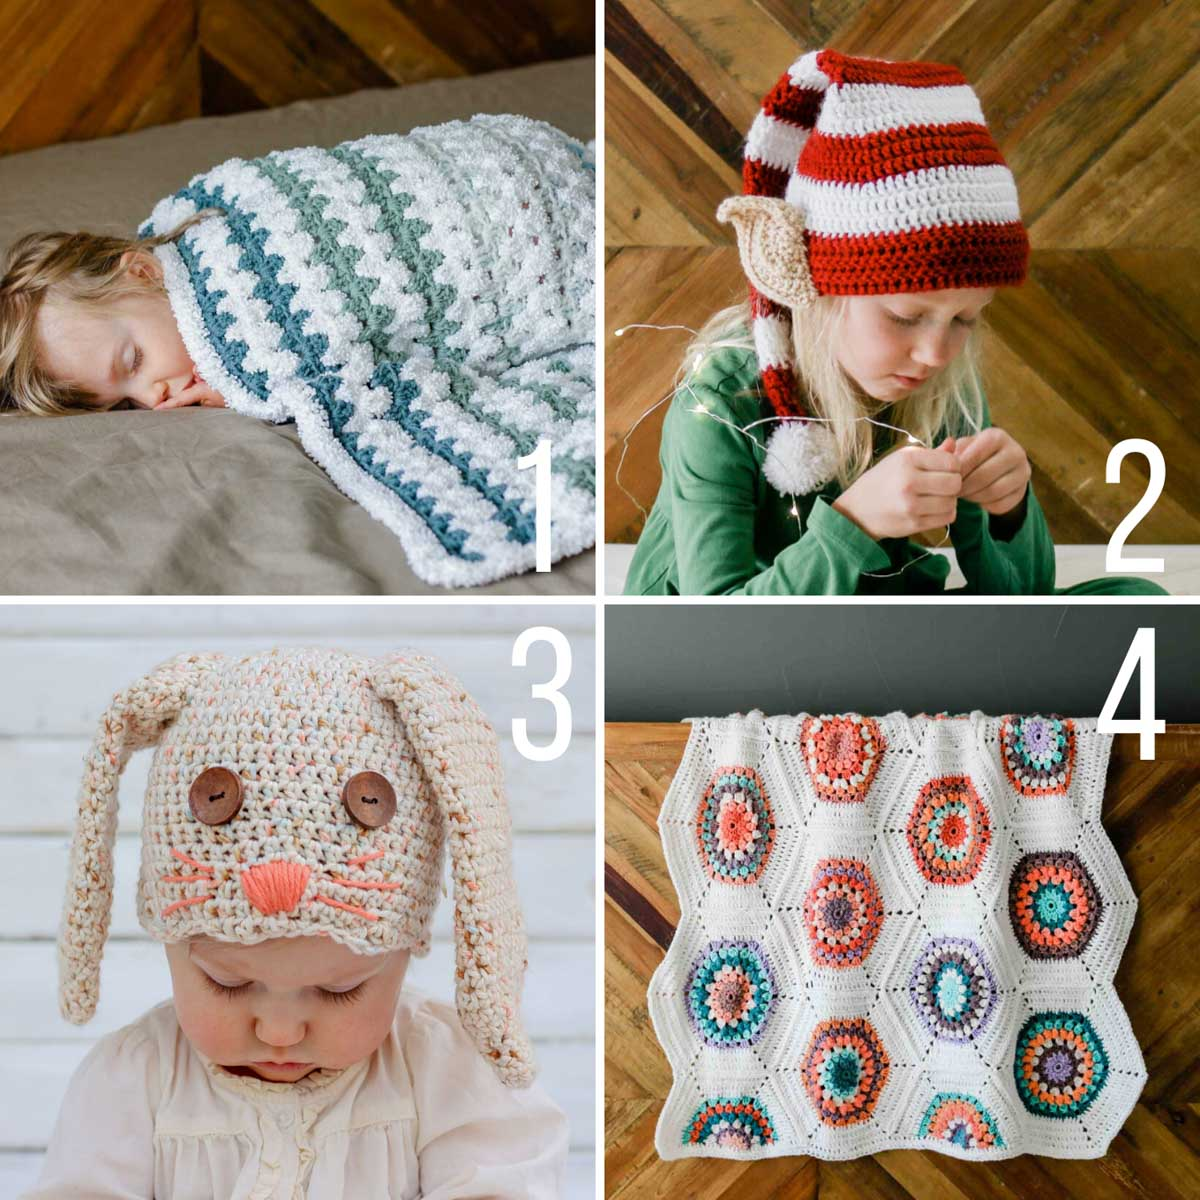 Free crochet patterns for babies and kids including a santa hat, easy crochet baby blanket, heirloom crochet baby blanket and an Easter bunny hat.